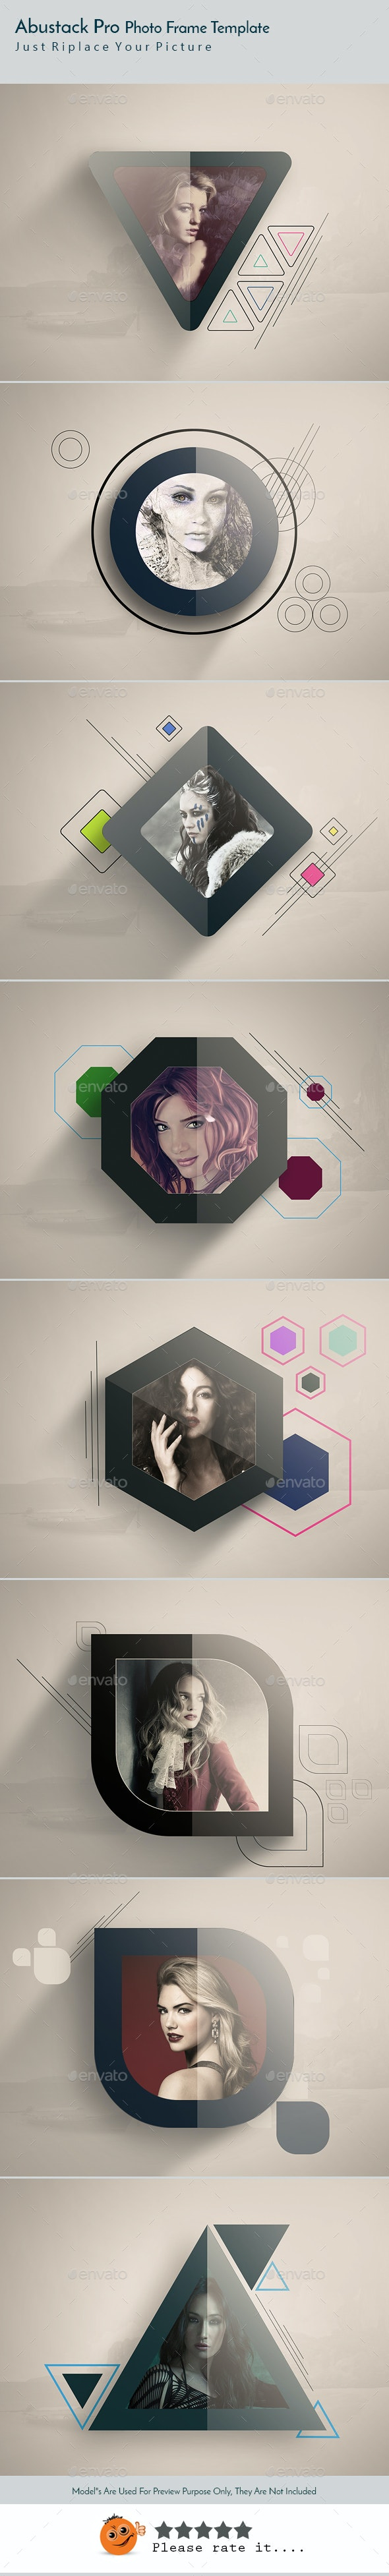 Abustrack Pro Photo Frame Template v06 - Photo Templates Graphics